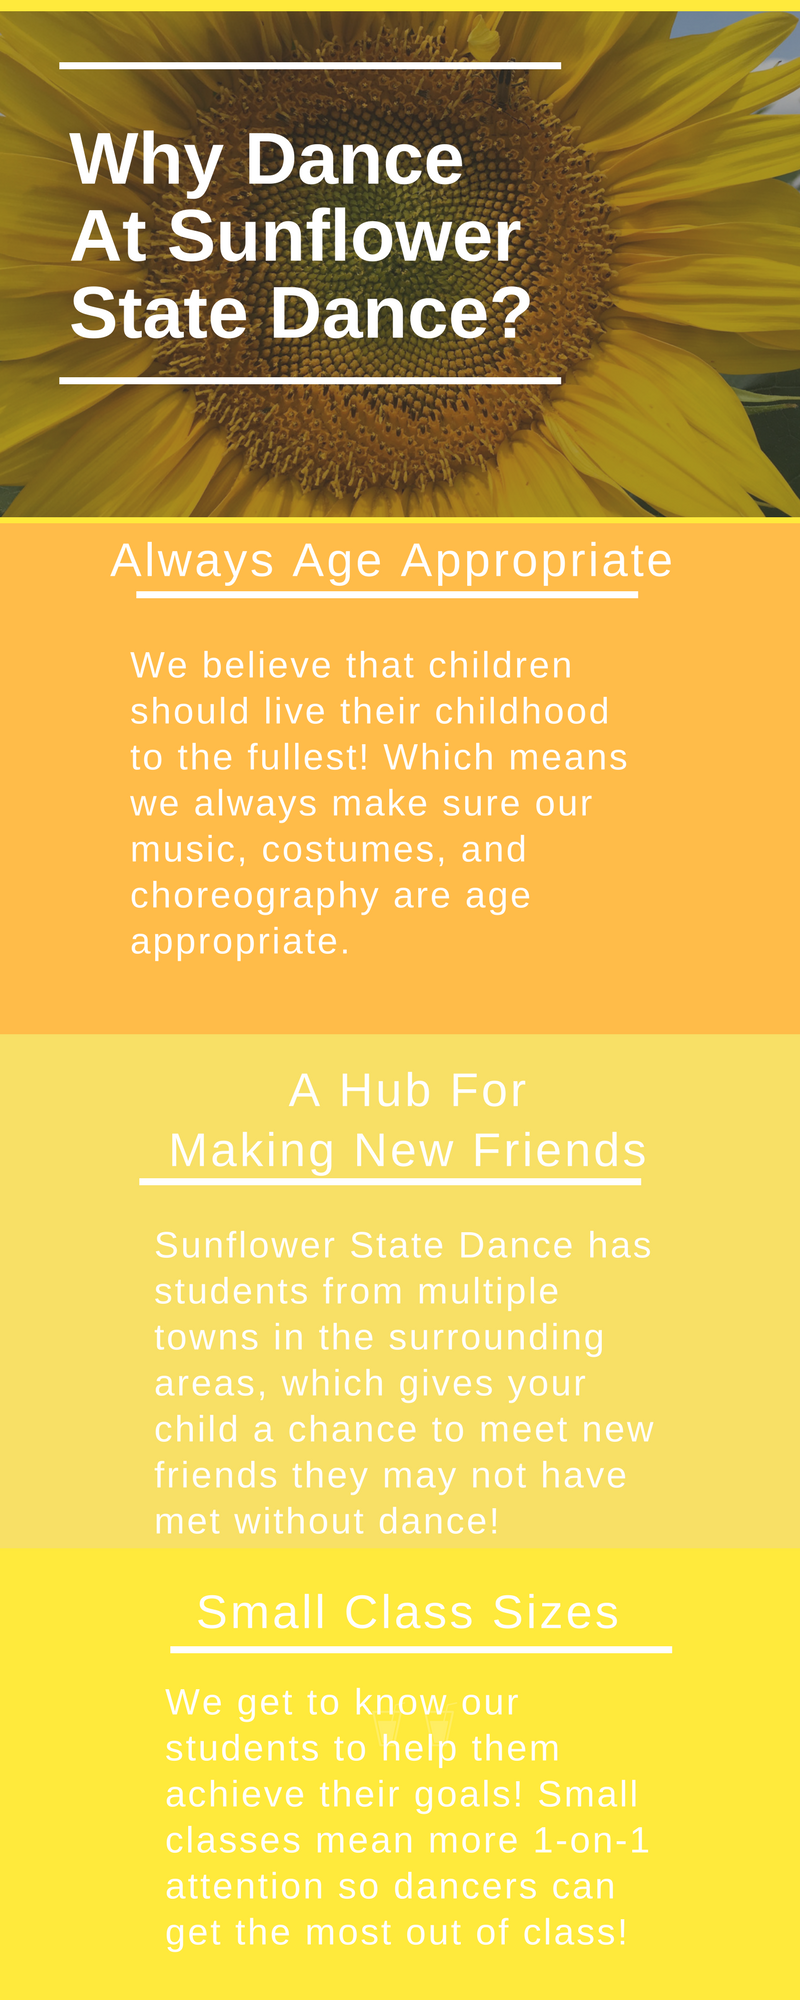 Why Dance At Sunflower State Dance-2.png